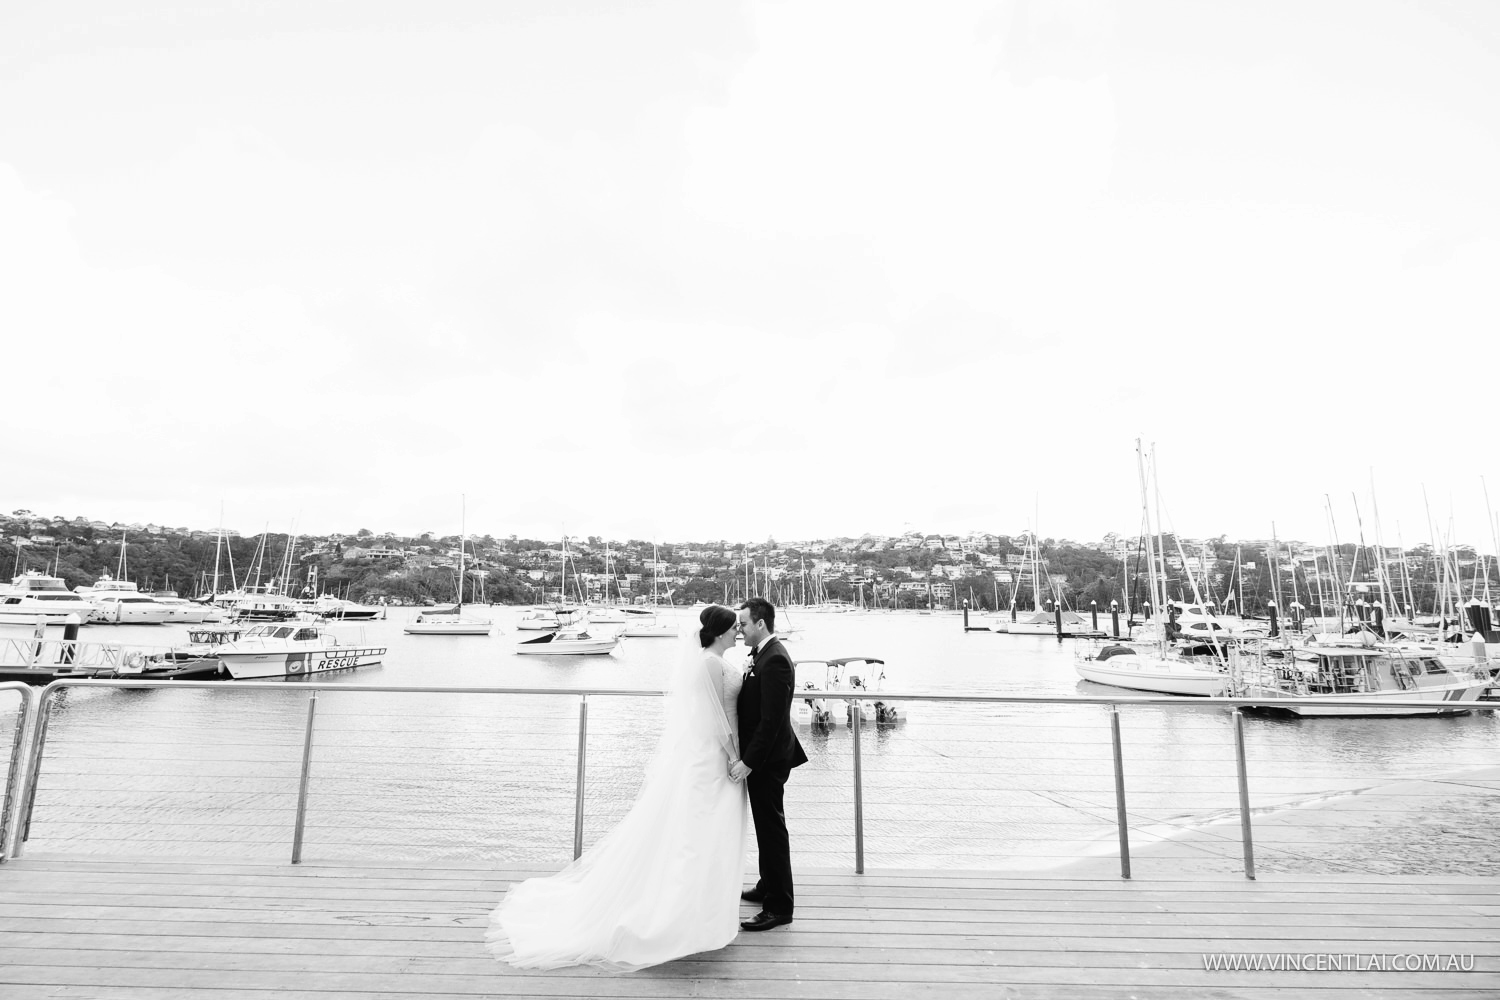 Weddings at The Spit - Zest Watefront Weddings Sydney